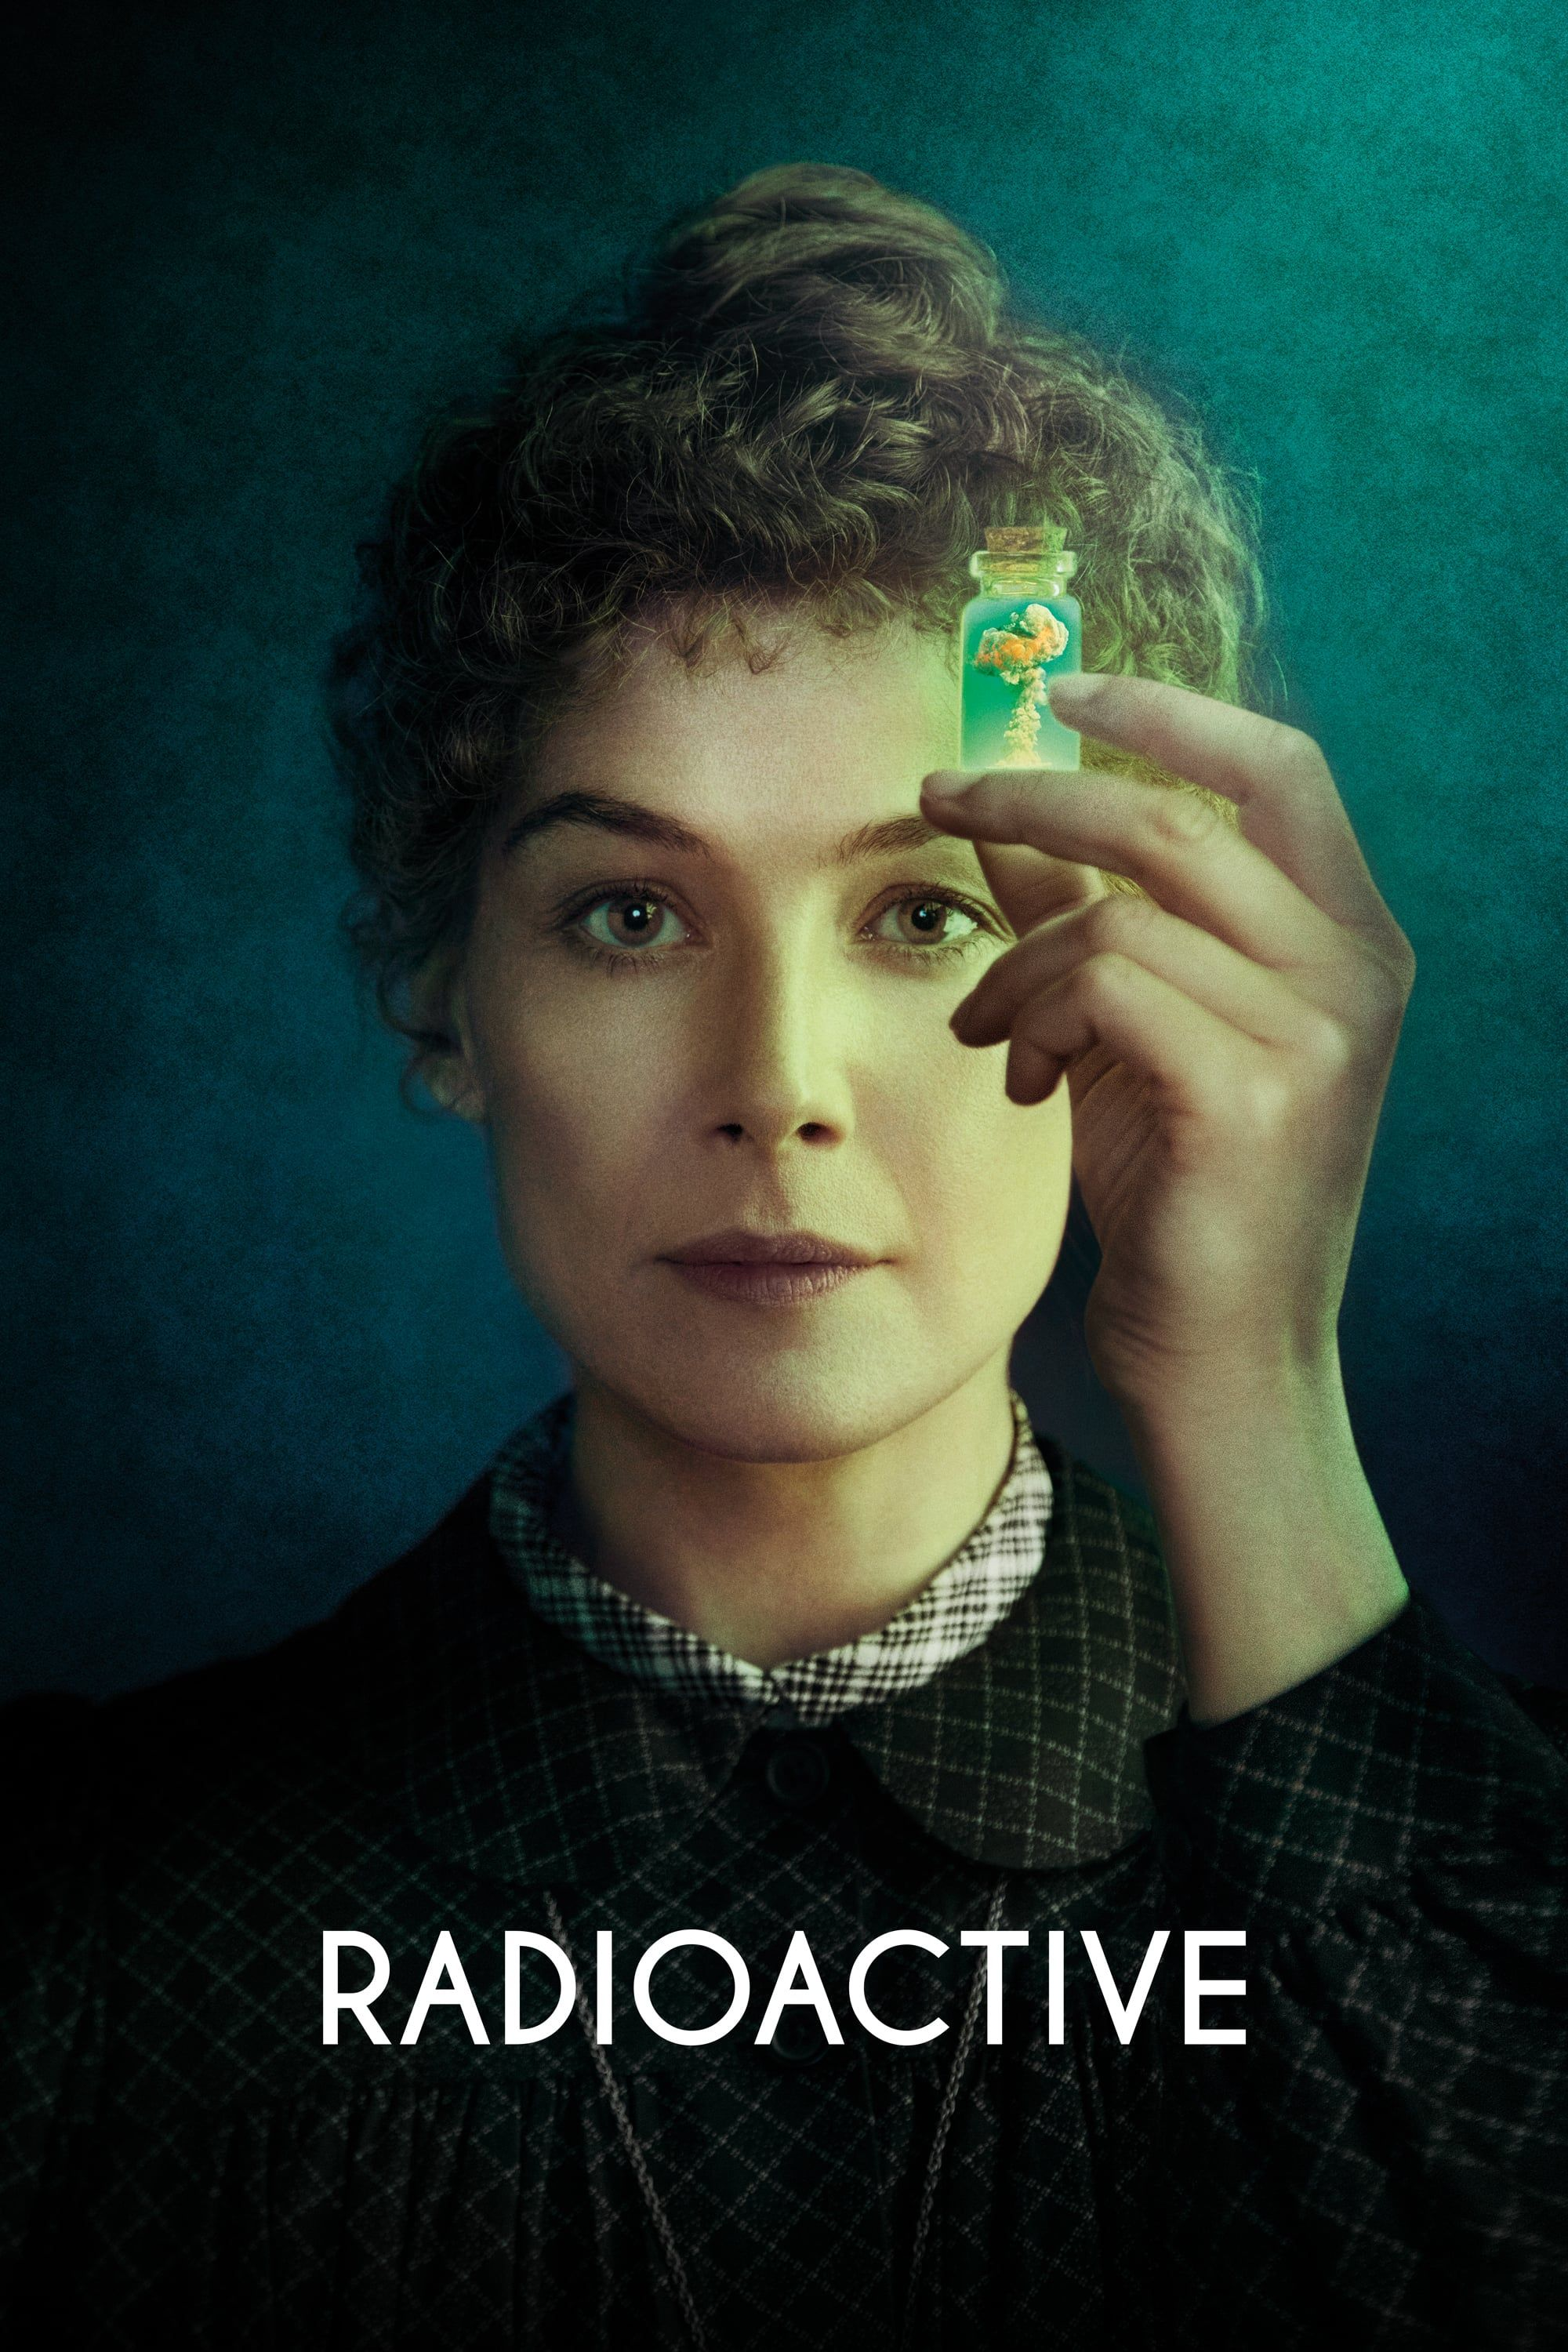 Radioactive 2020 Streaming Altadefinizione Marie Curie Full Movies Film